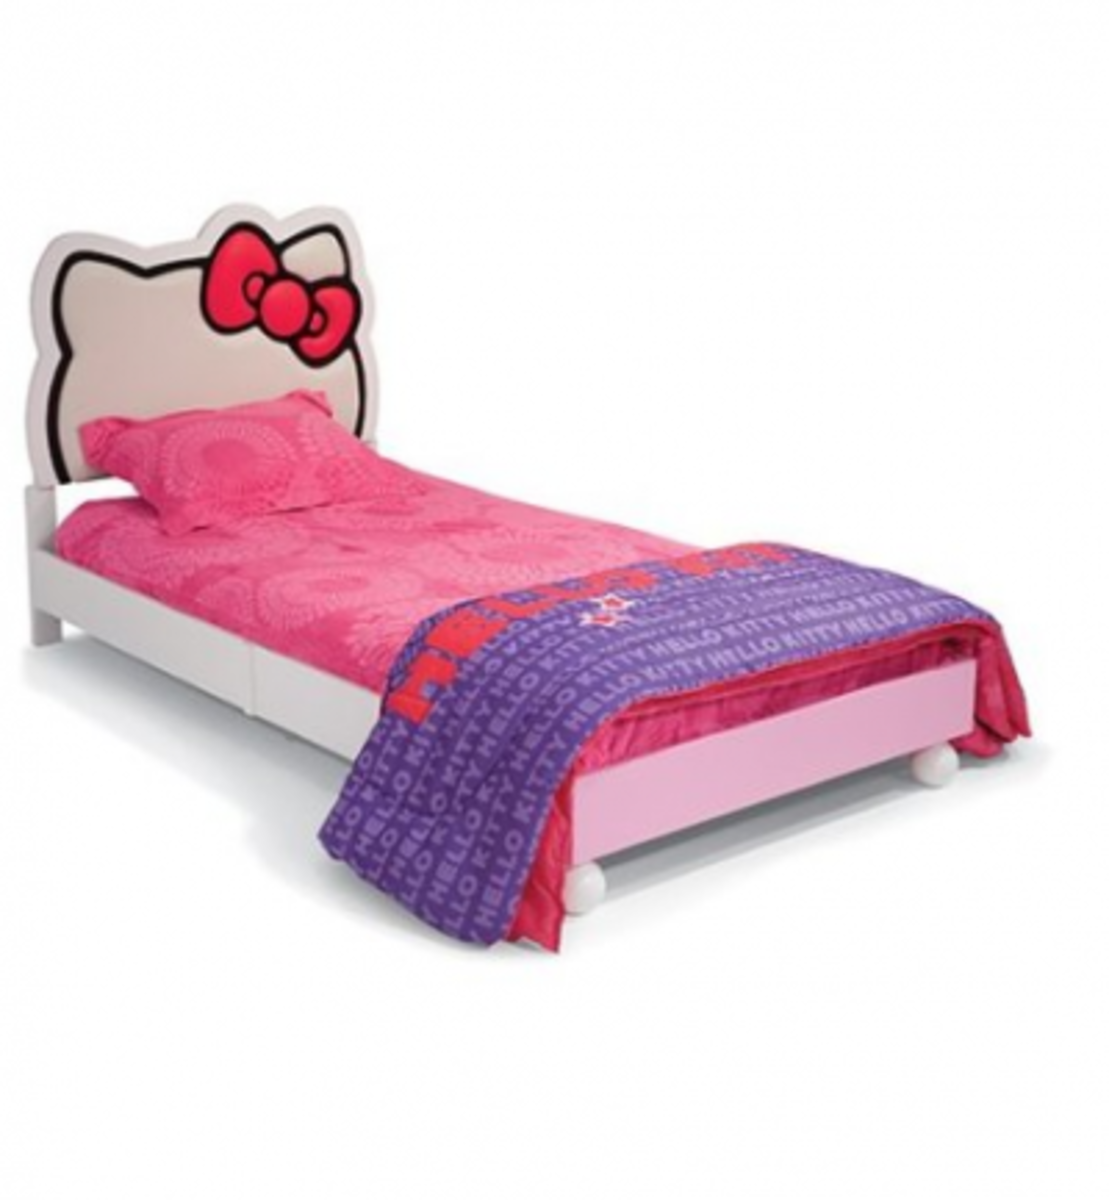 Bed Frame with Bow